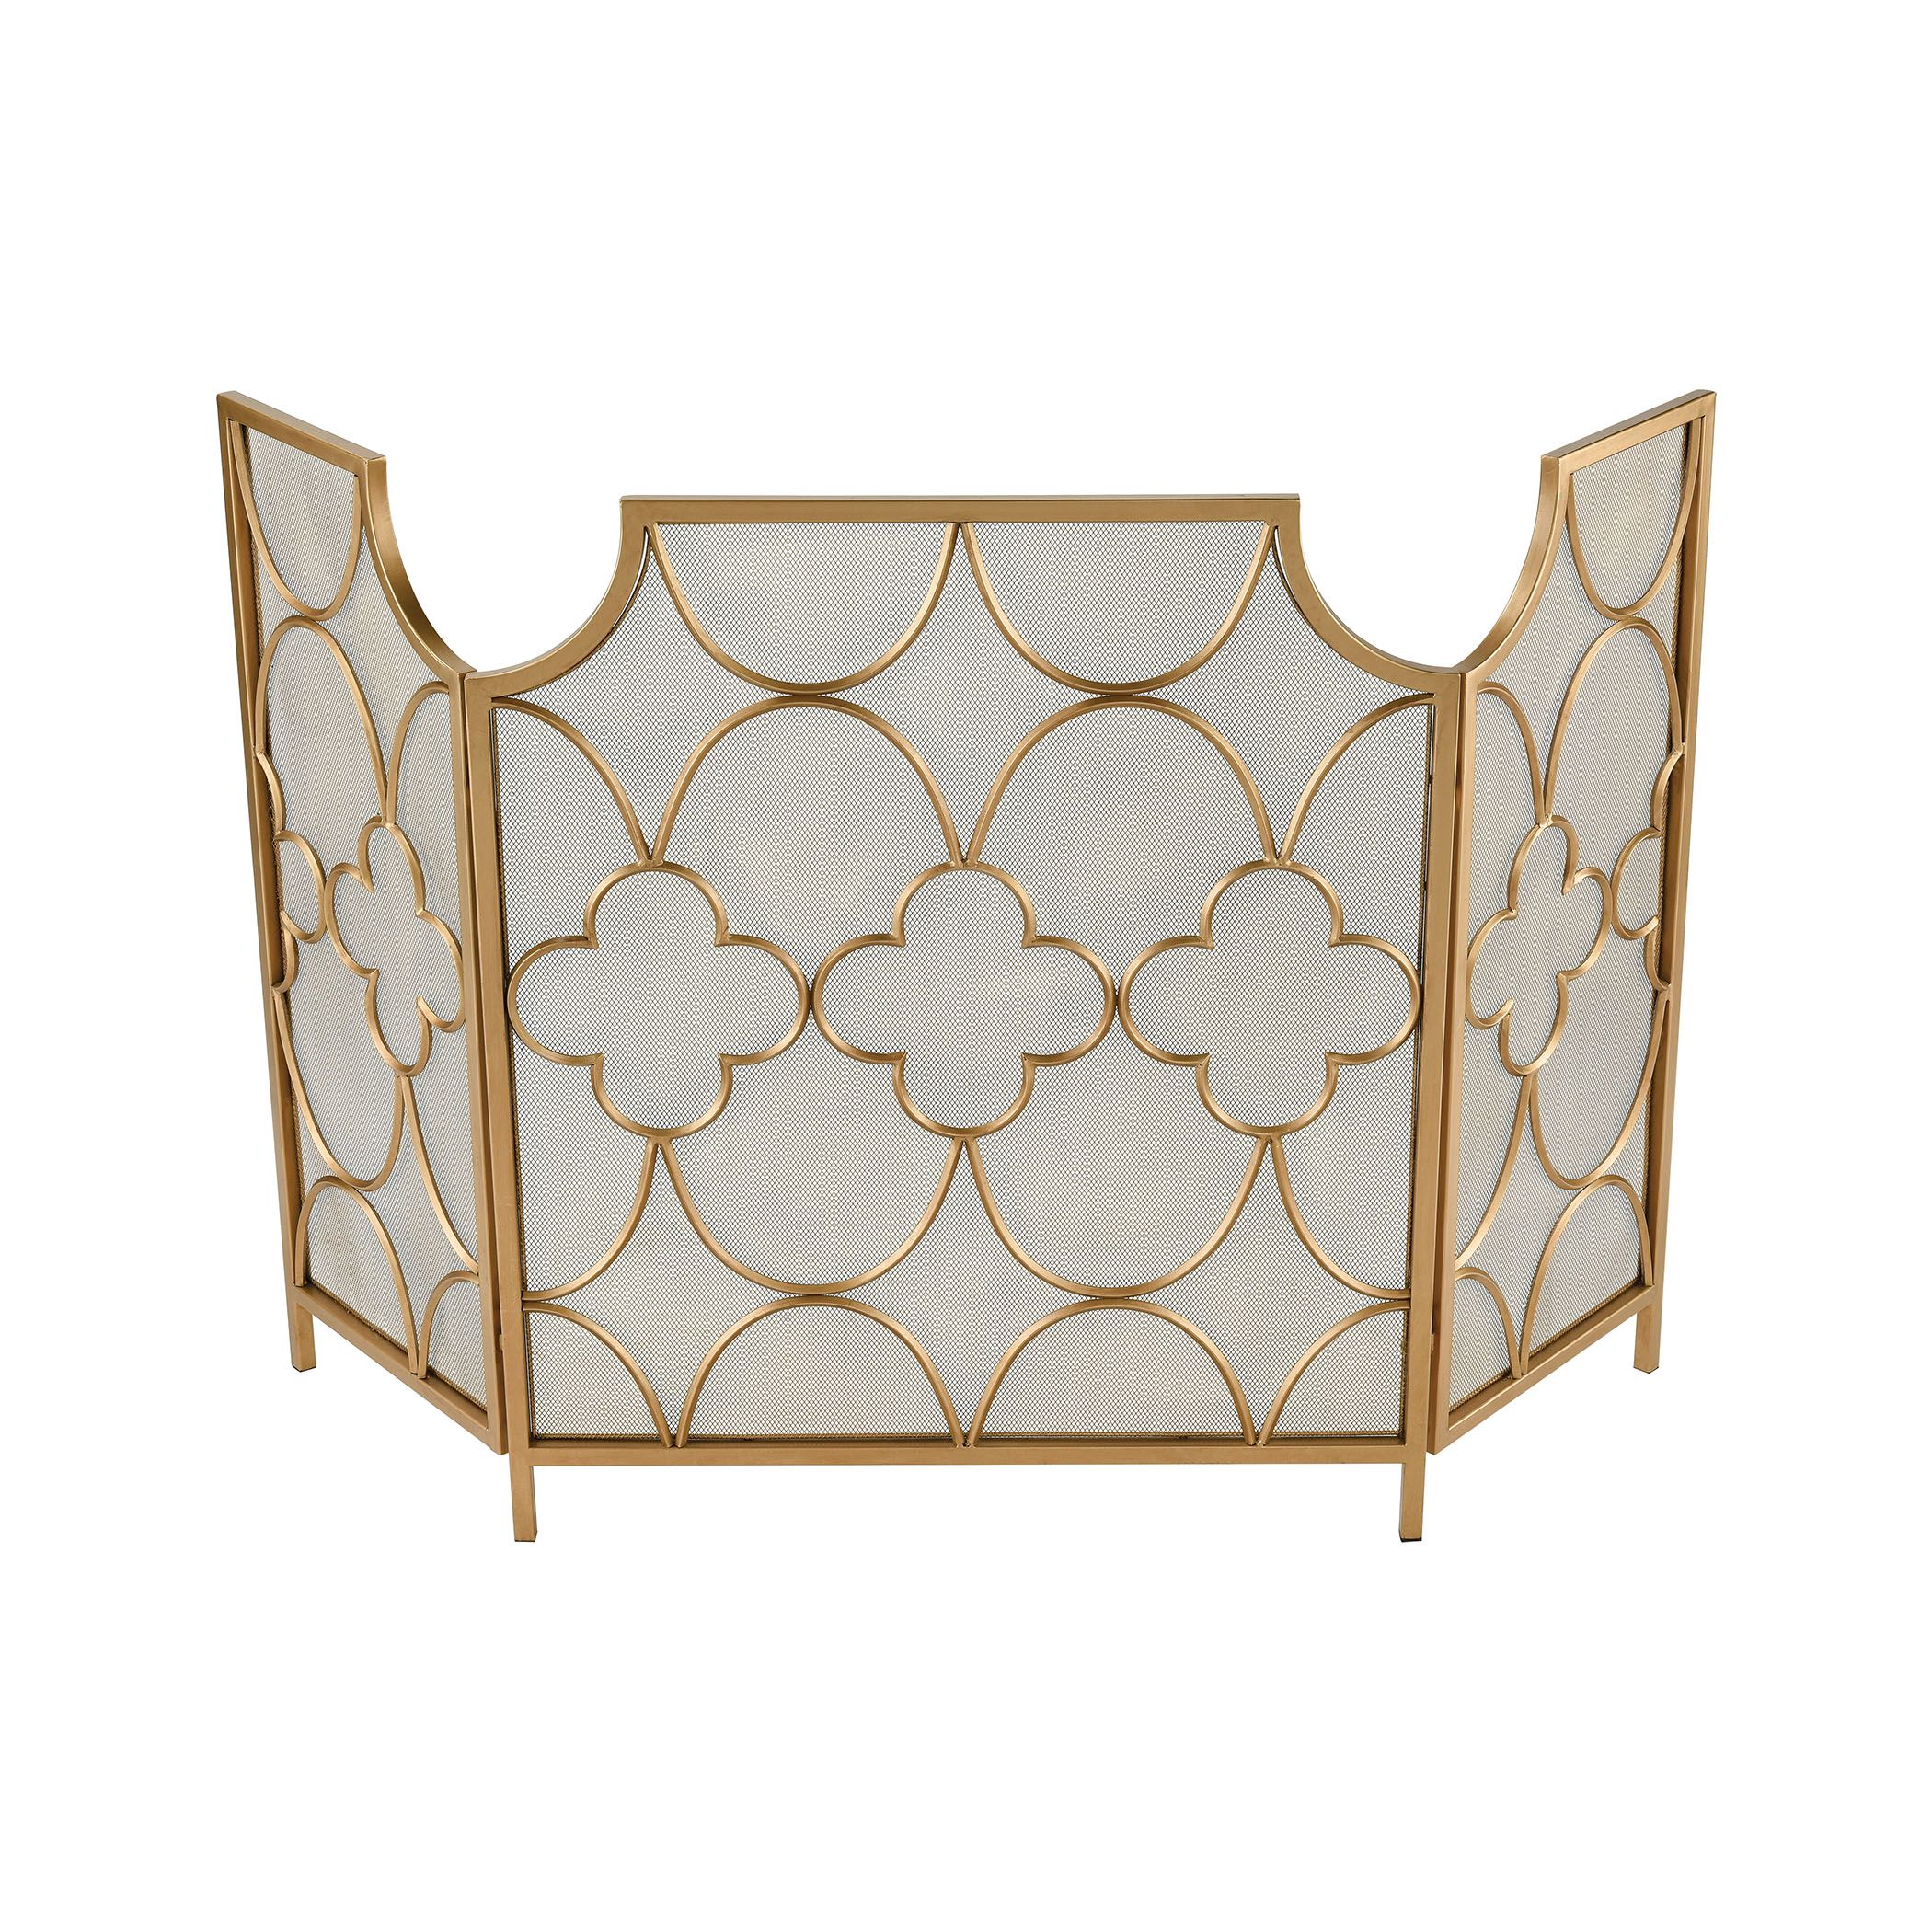 Three Magi Fireplace Screen 351-10565 | ELK Home